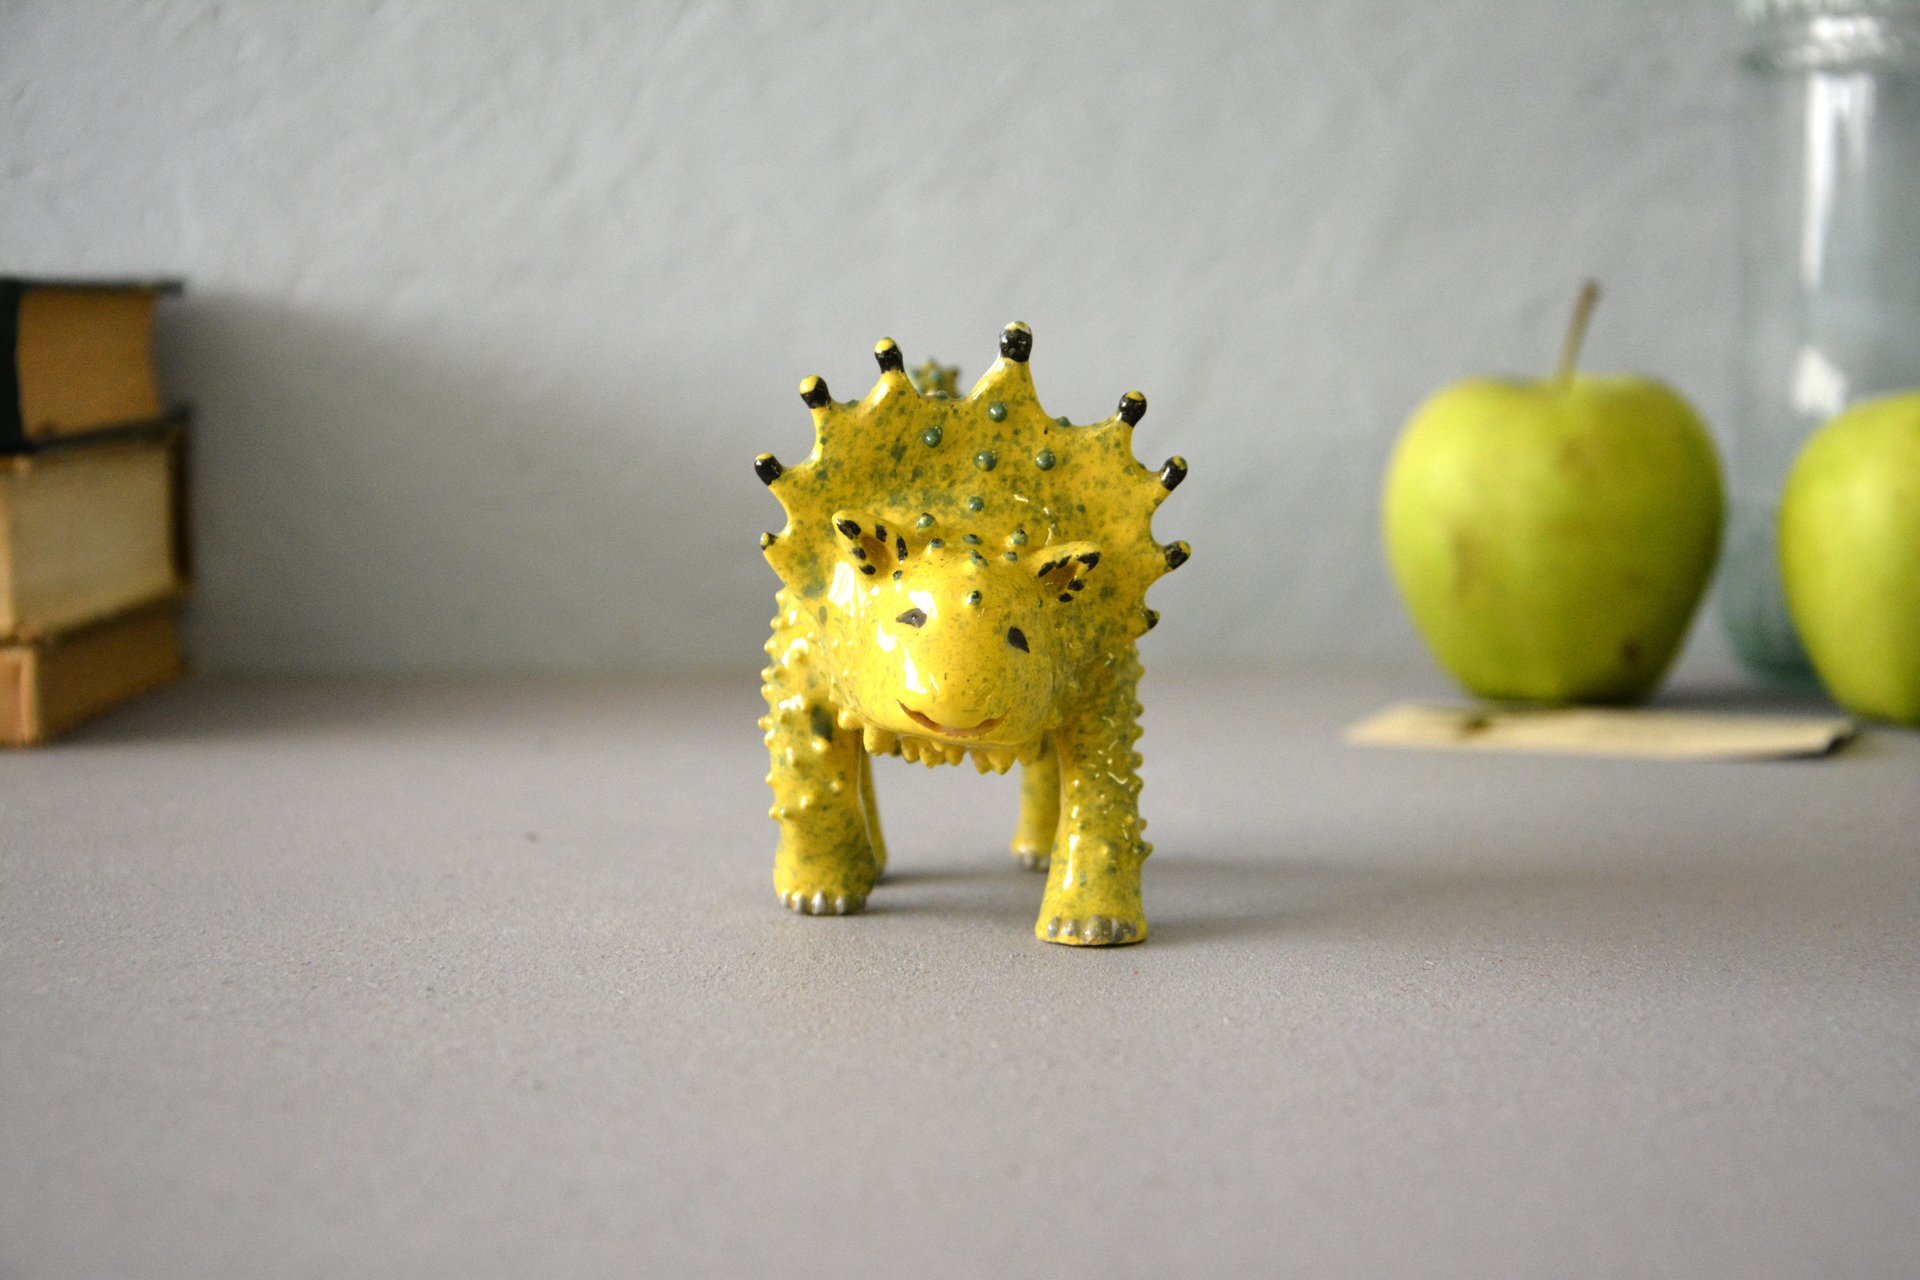 Sunosaur - Ceramic fantastic creatures, height - 9,5 cm, length - 12 cm, photo 1 of 5.